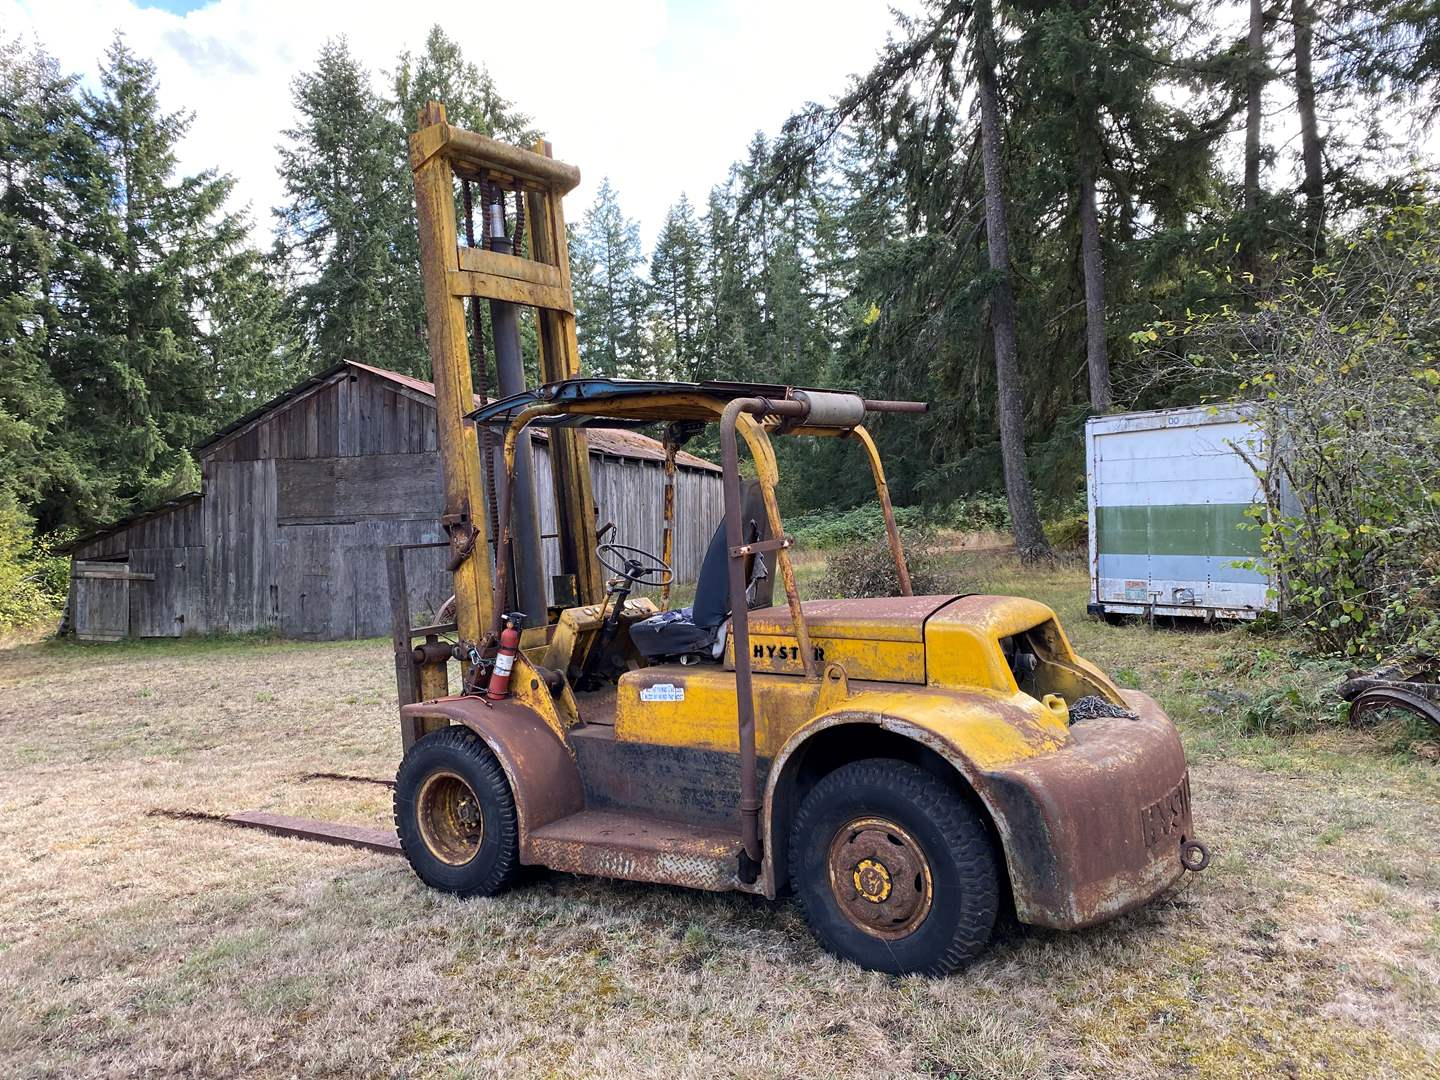 Lot # 296 - Old HYSTER Industrial Size Forklift  - (Works - See Video) (main image)